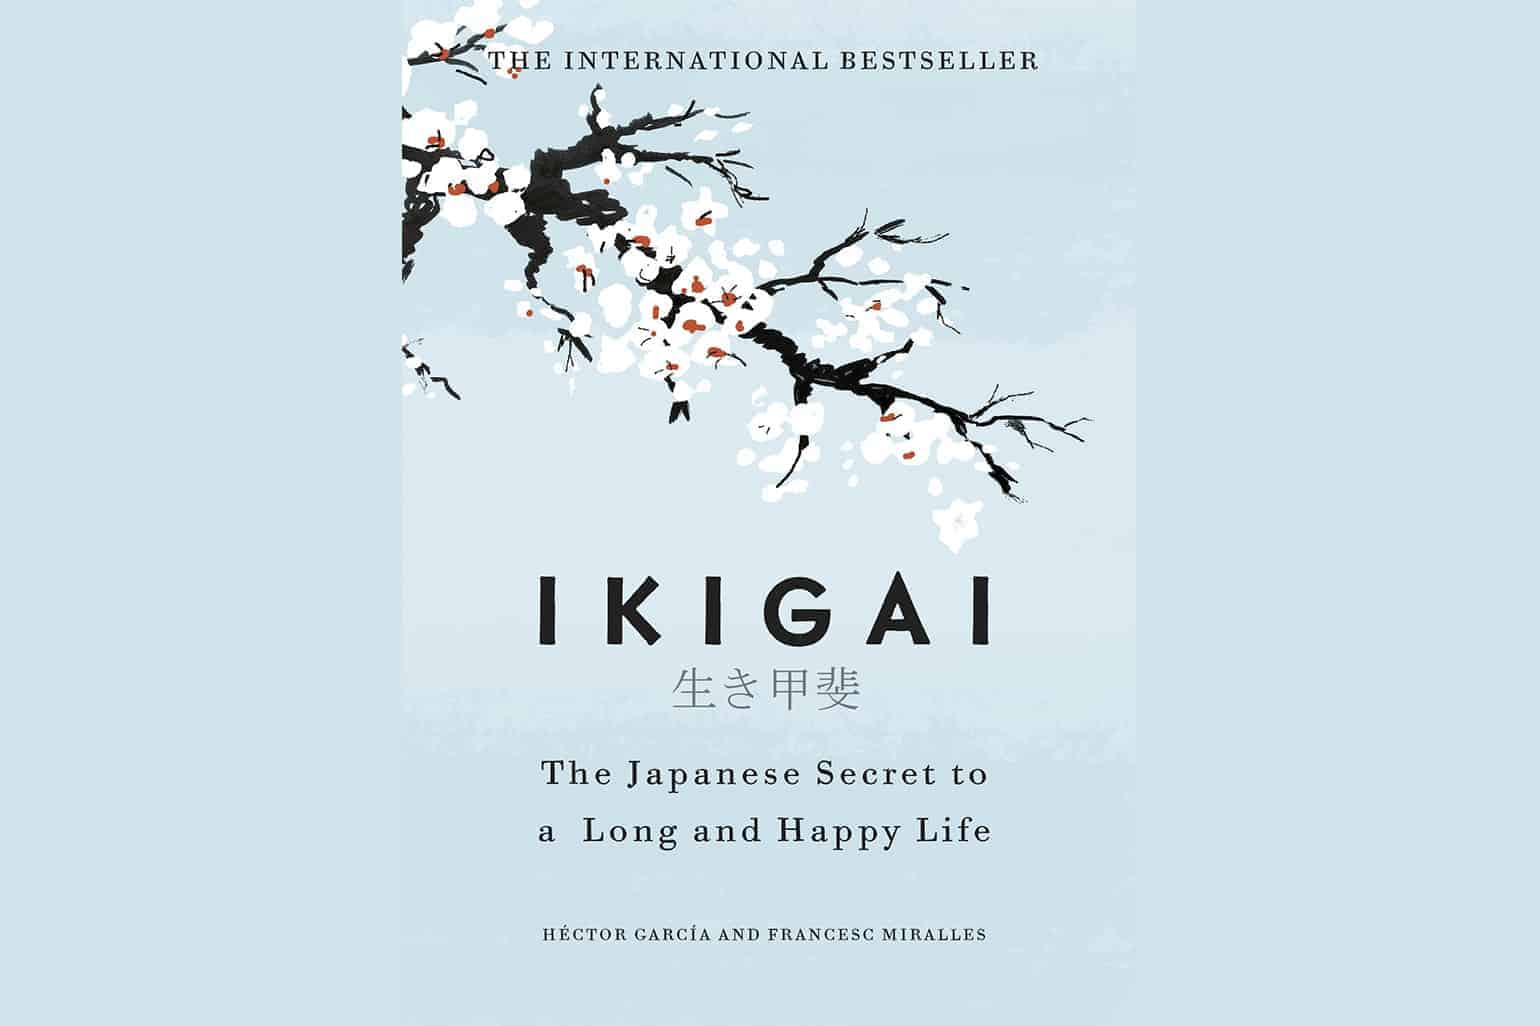 Ikigai The Japanese Secret To A Long And Happy Life Héctor García Francesc Miralles